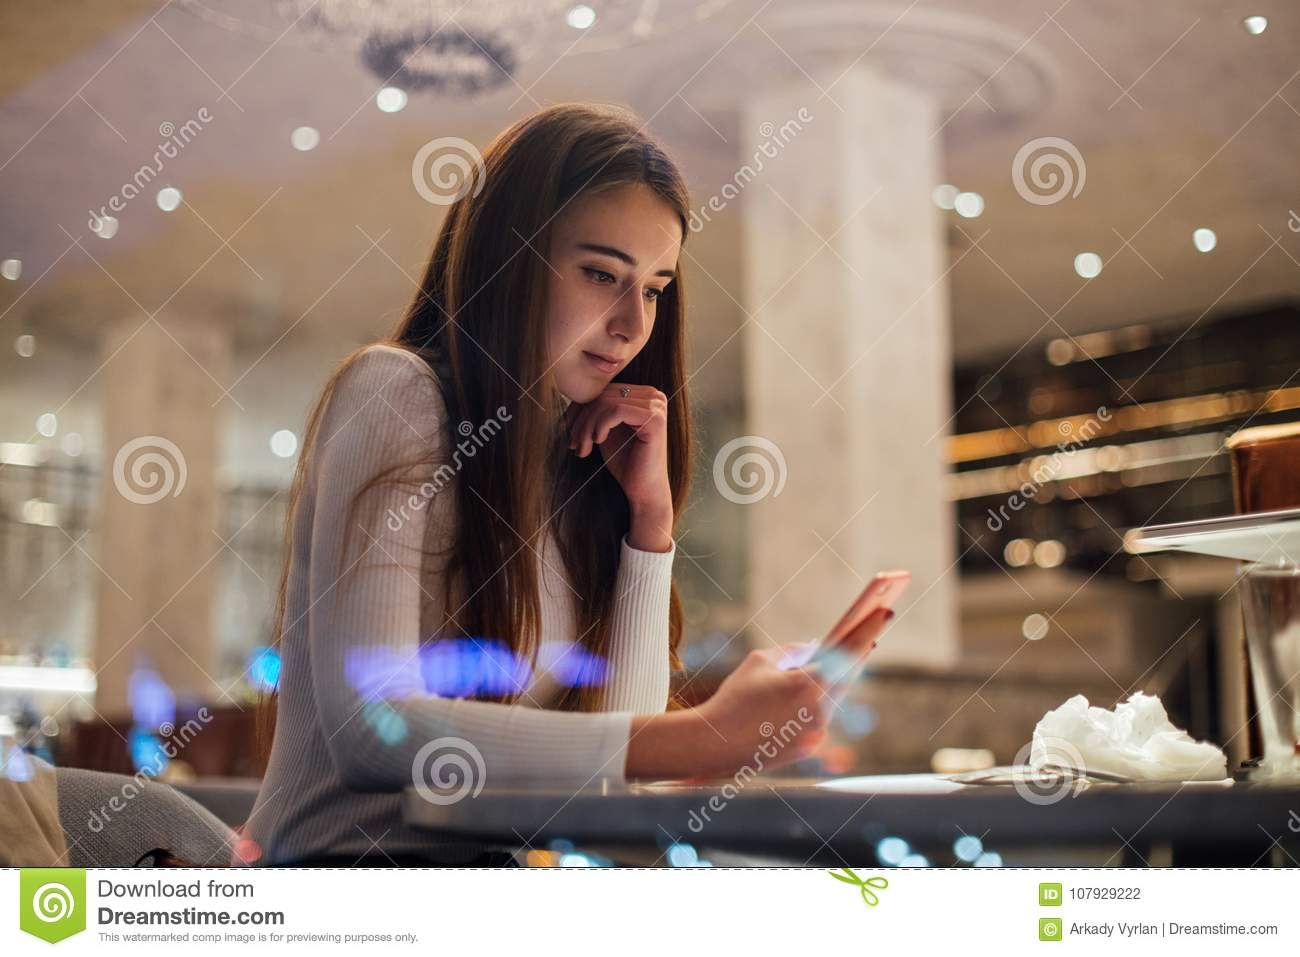 Cute and pretty young woman on smartphone in cafe